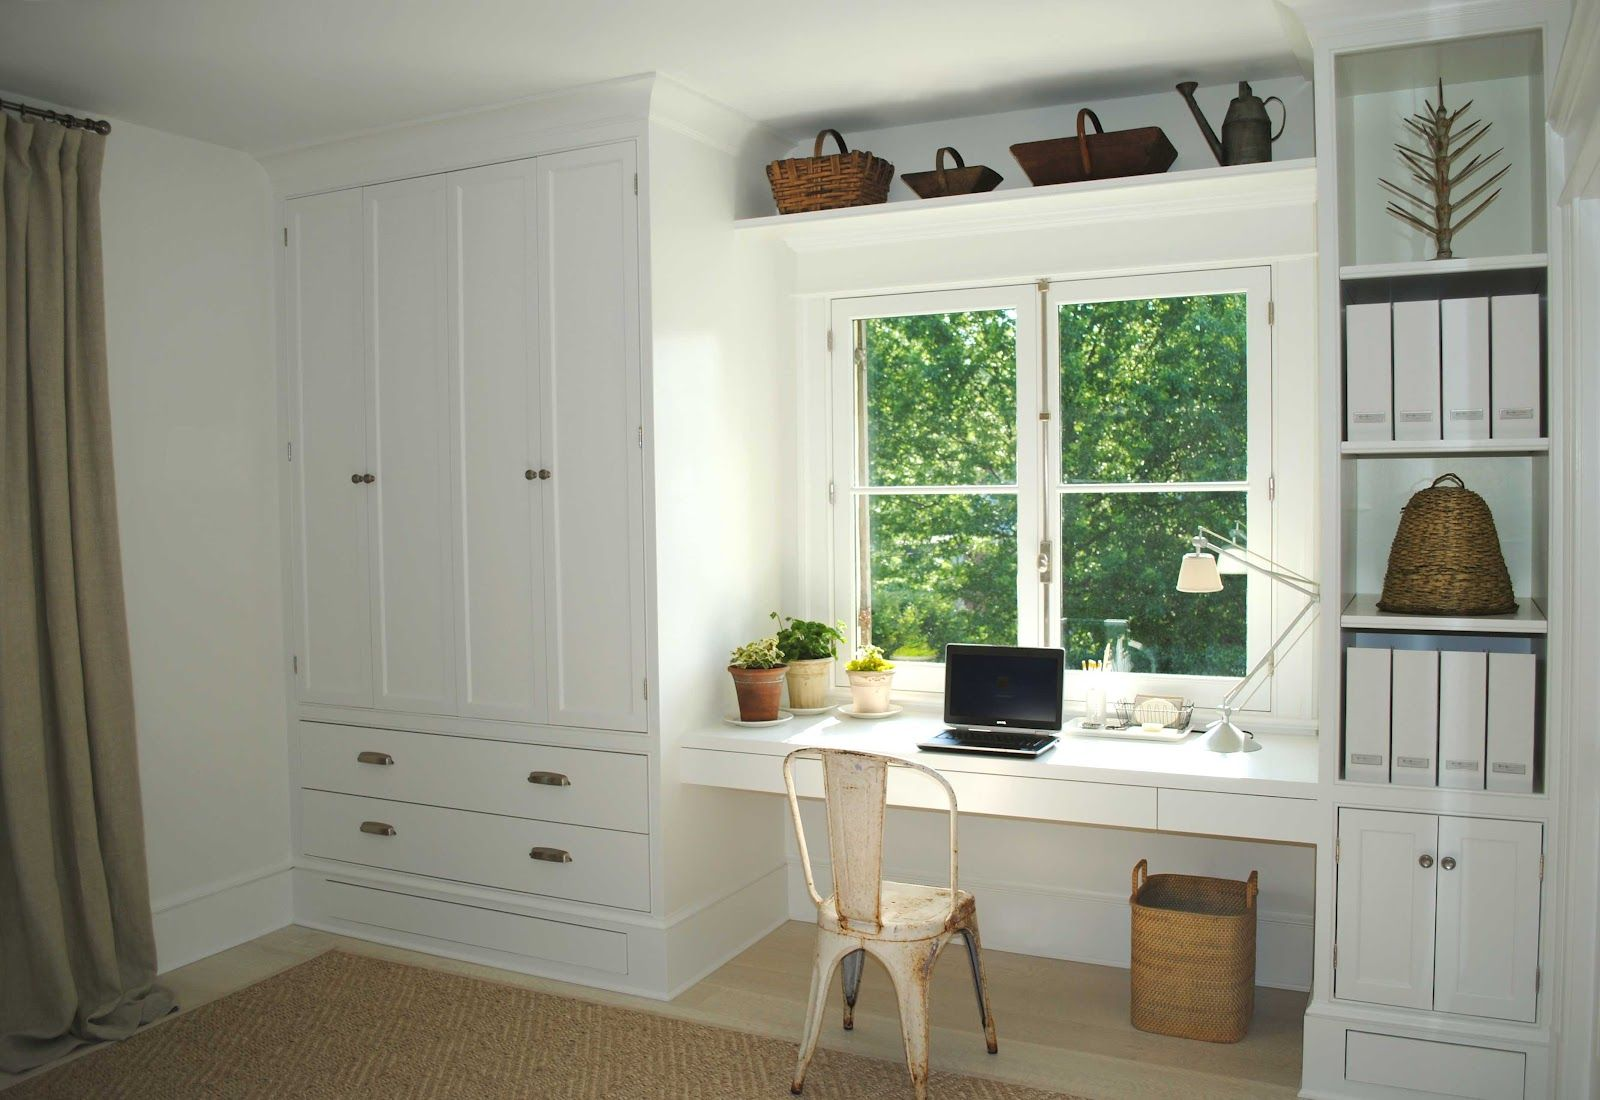 Master Bedroom Built In Closet With Desk Ideas My New Home Office With Lots Of Storage The Upper Wardrobe On The